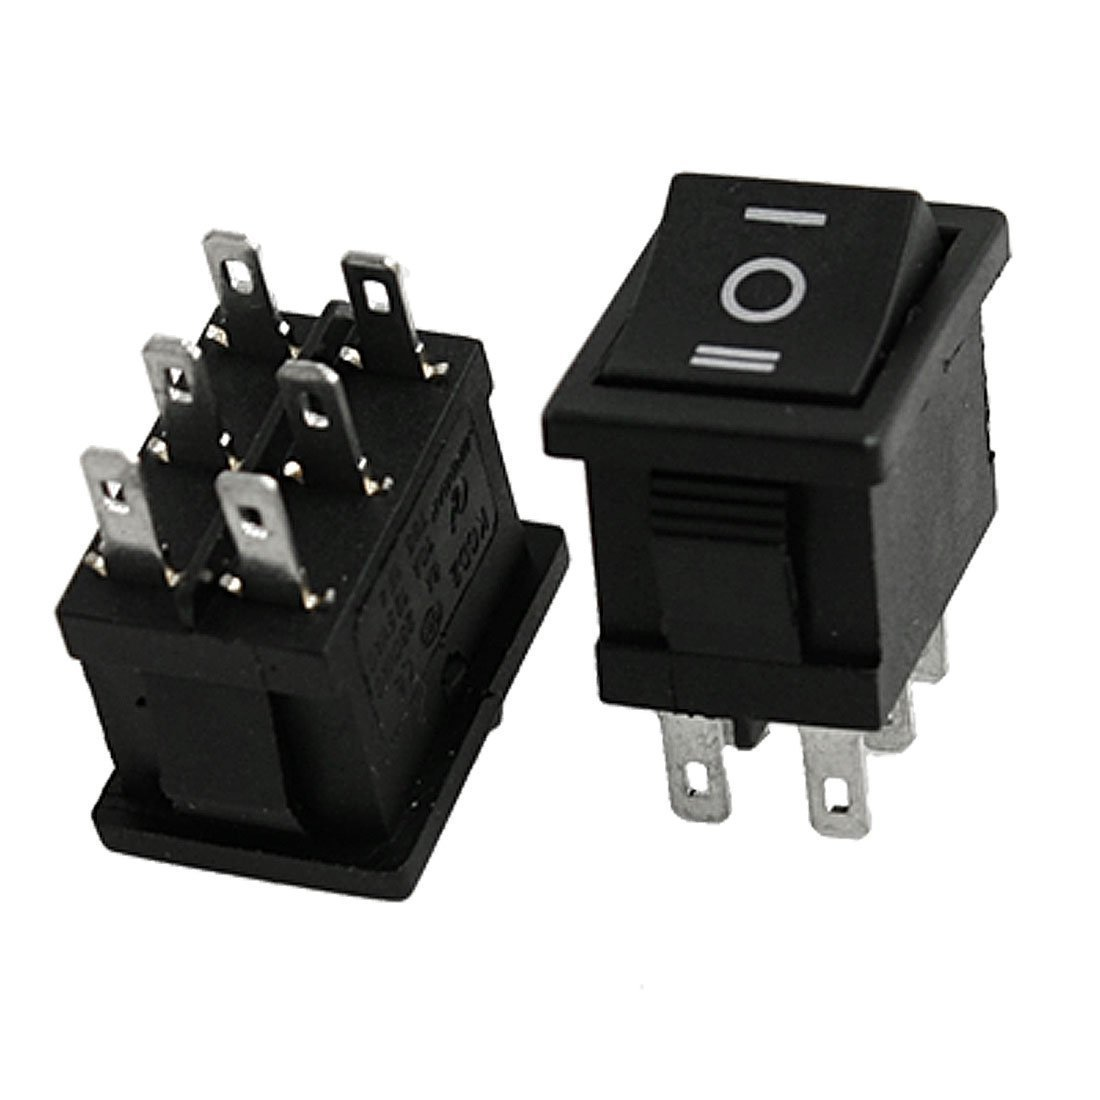 10 Pcs ON-OFF-ON DPDT 10A/125V 6A/250V AC toggle illuminated toggle 2 pin 2 pole black electric electrical Snap In Rocker ON OFF ON DPDT Snap Rocker Switch